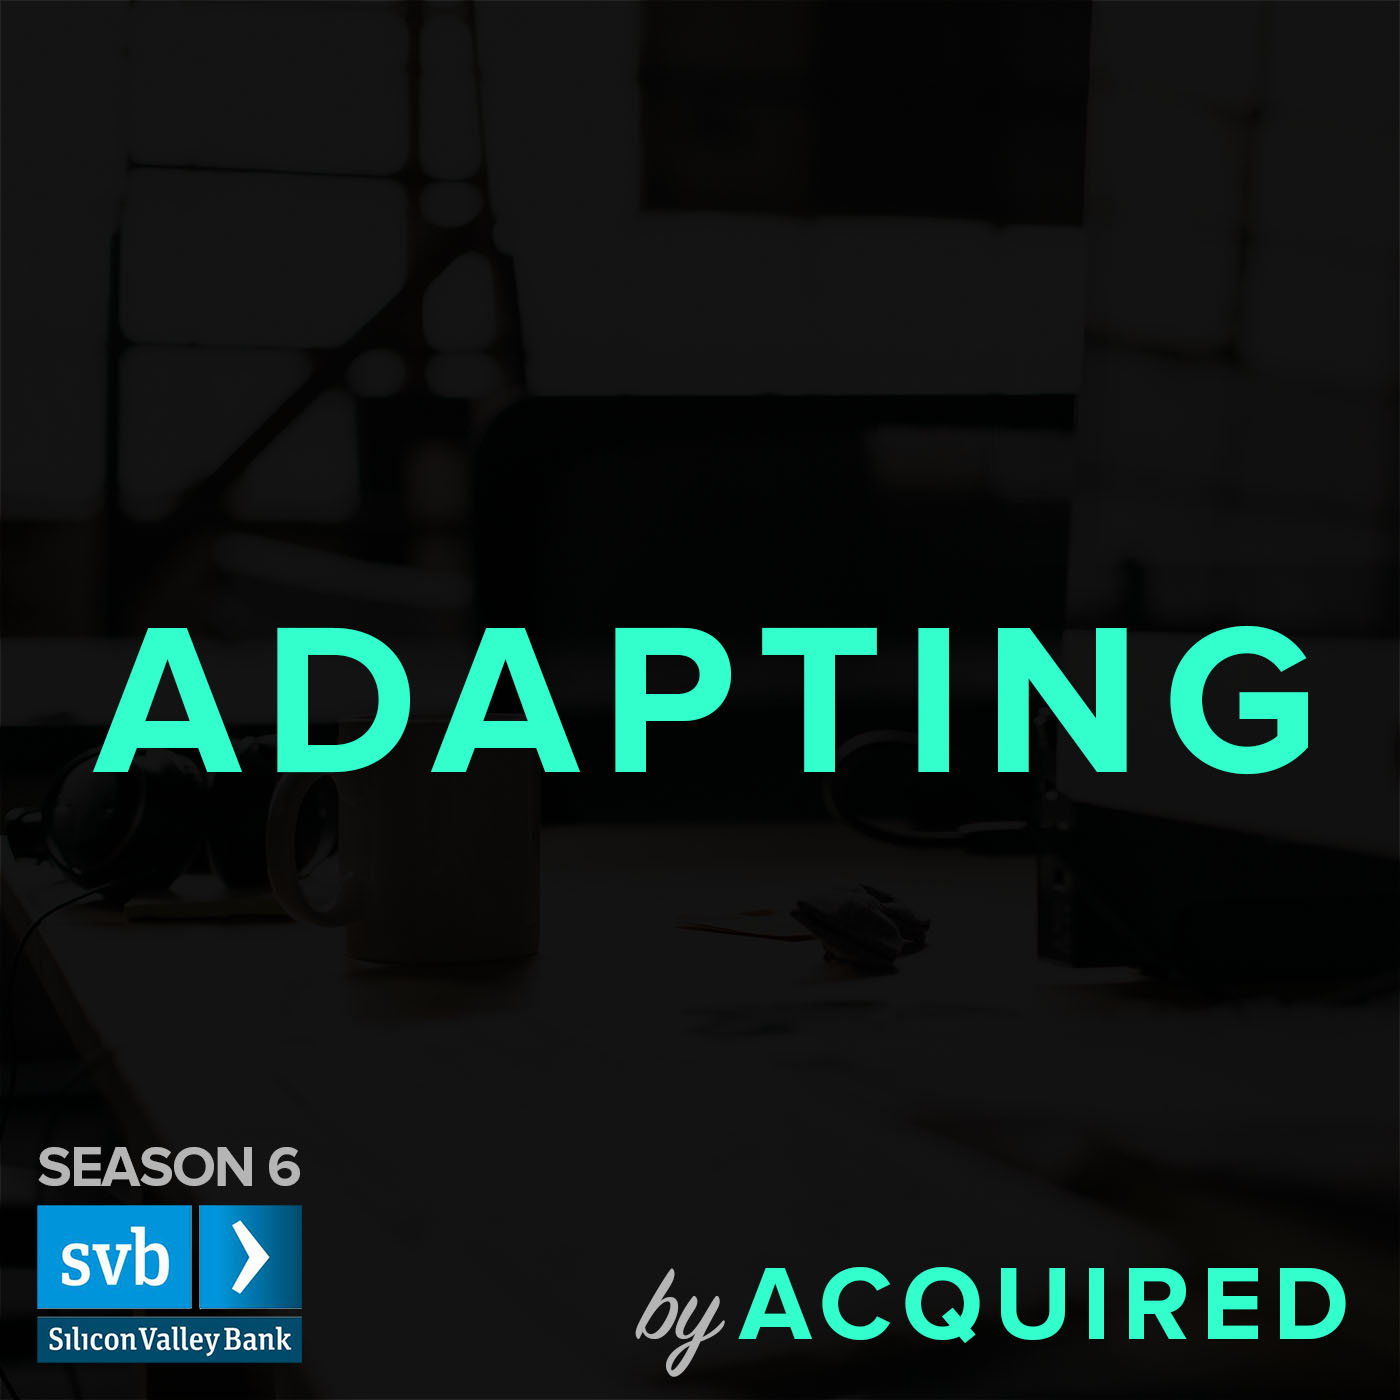 Adapting Episode 3: Intel